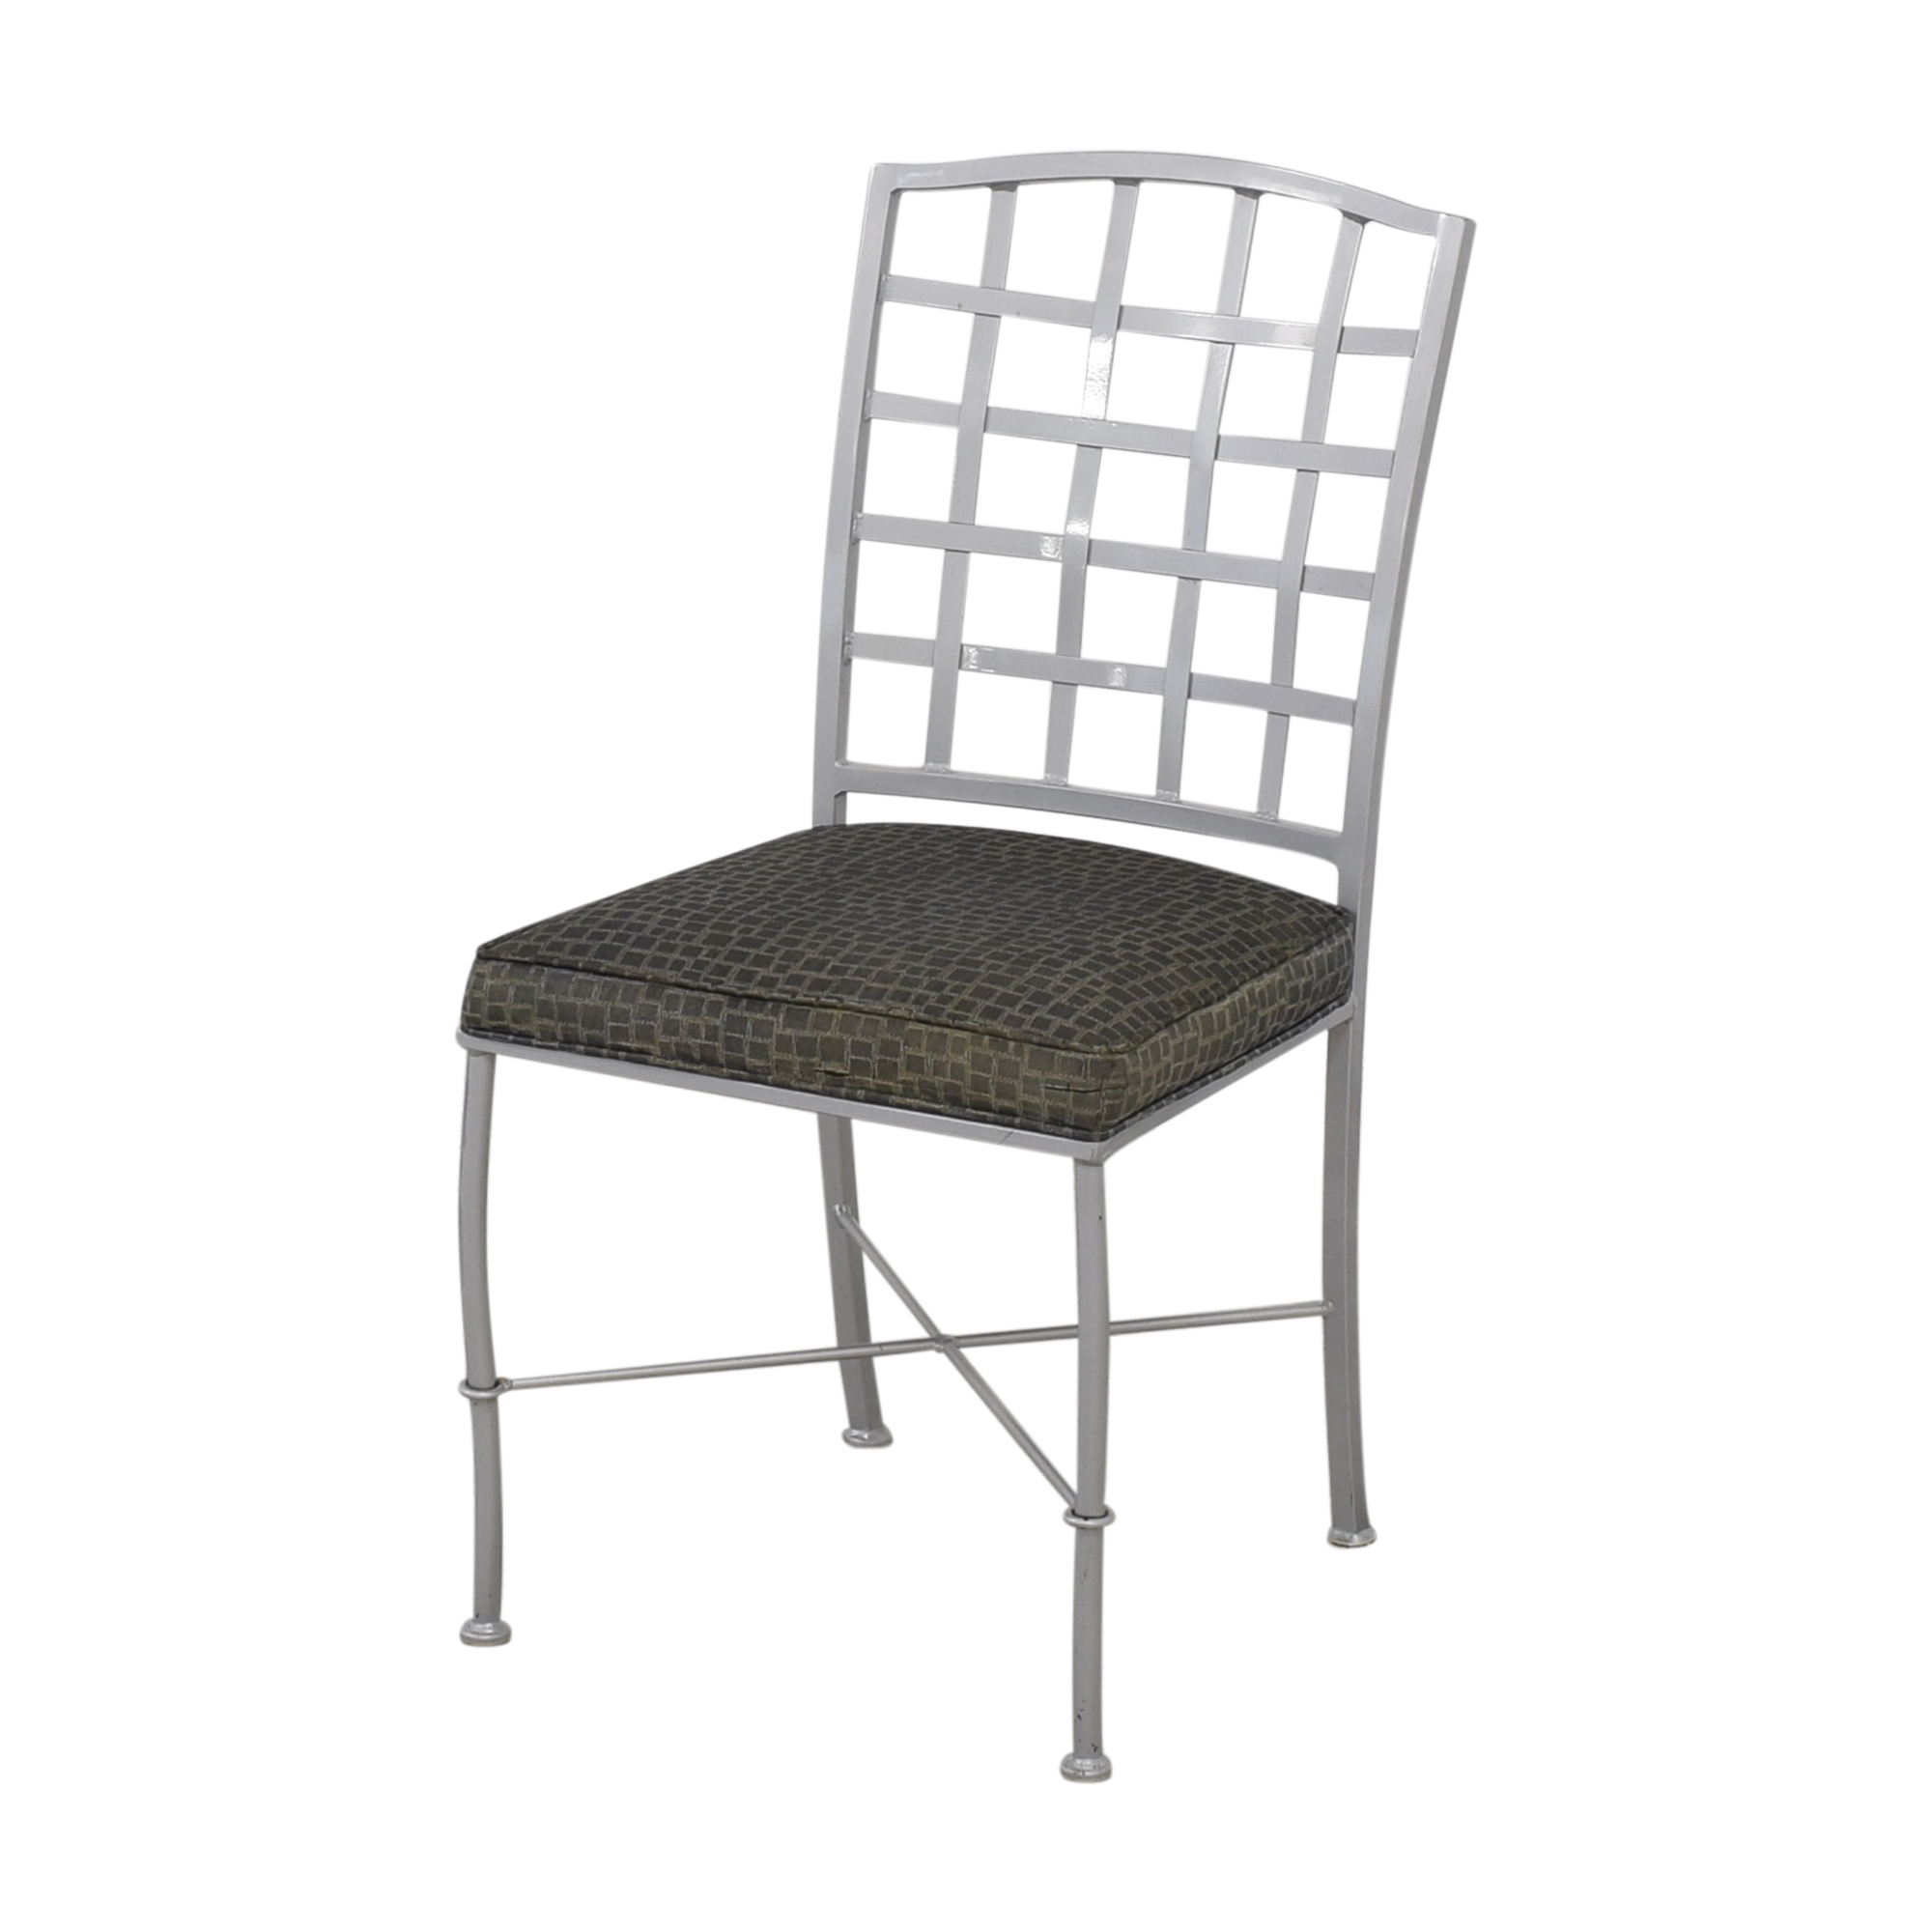 Johnston Casuals Johnston Casuals Lattice Back Dining Chairs dimensions